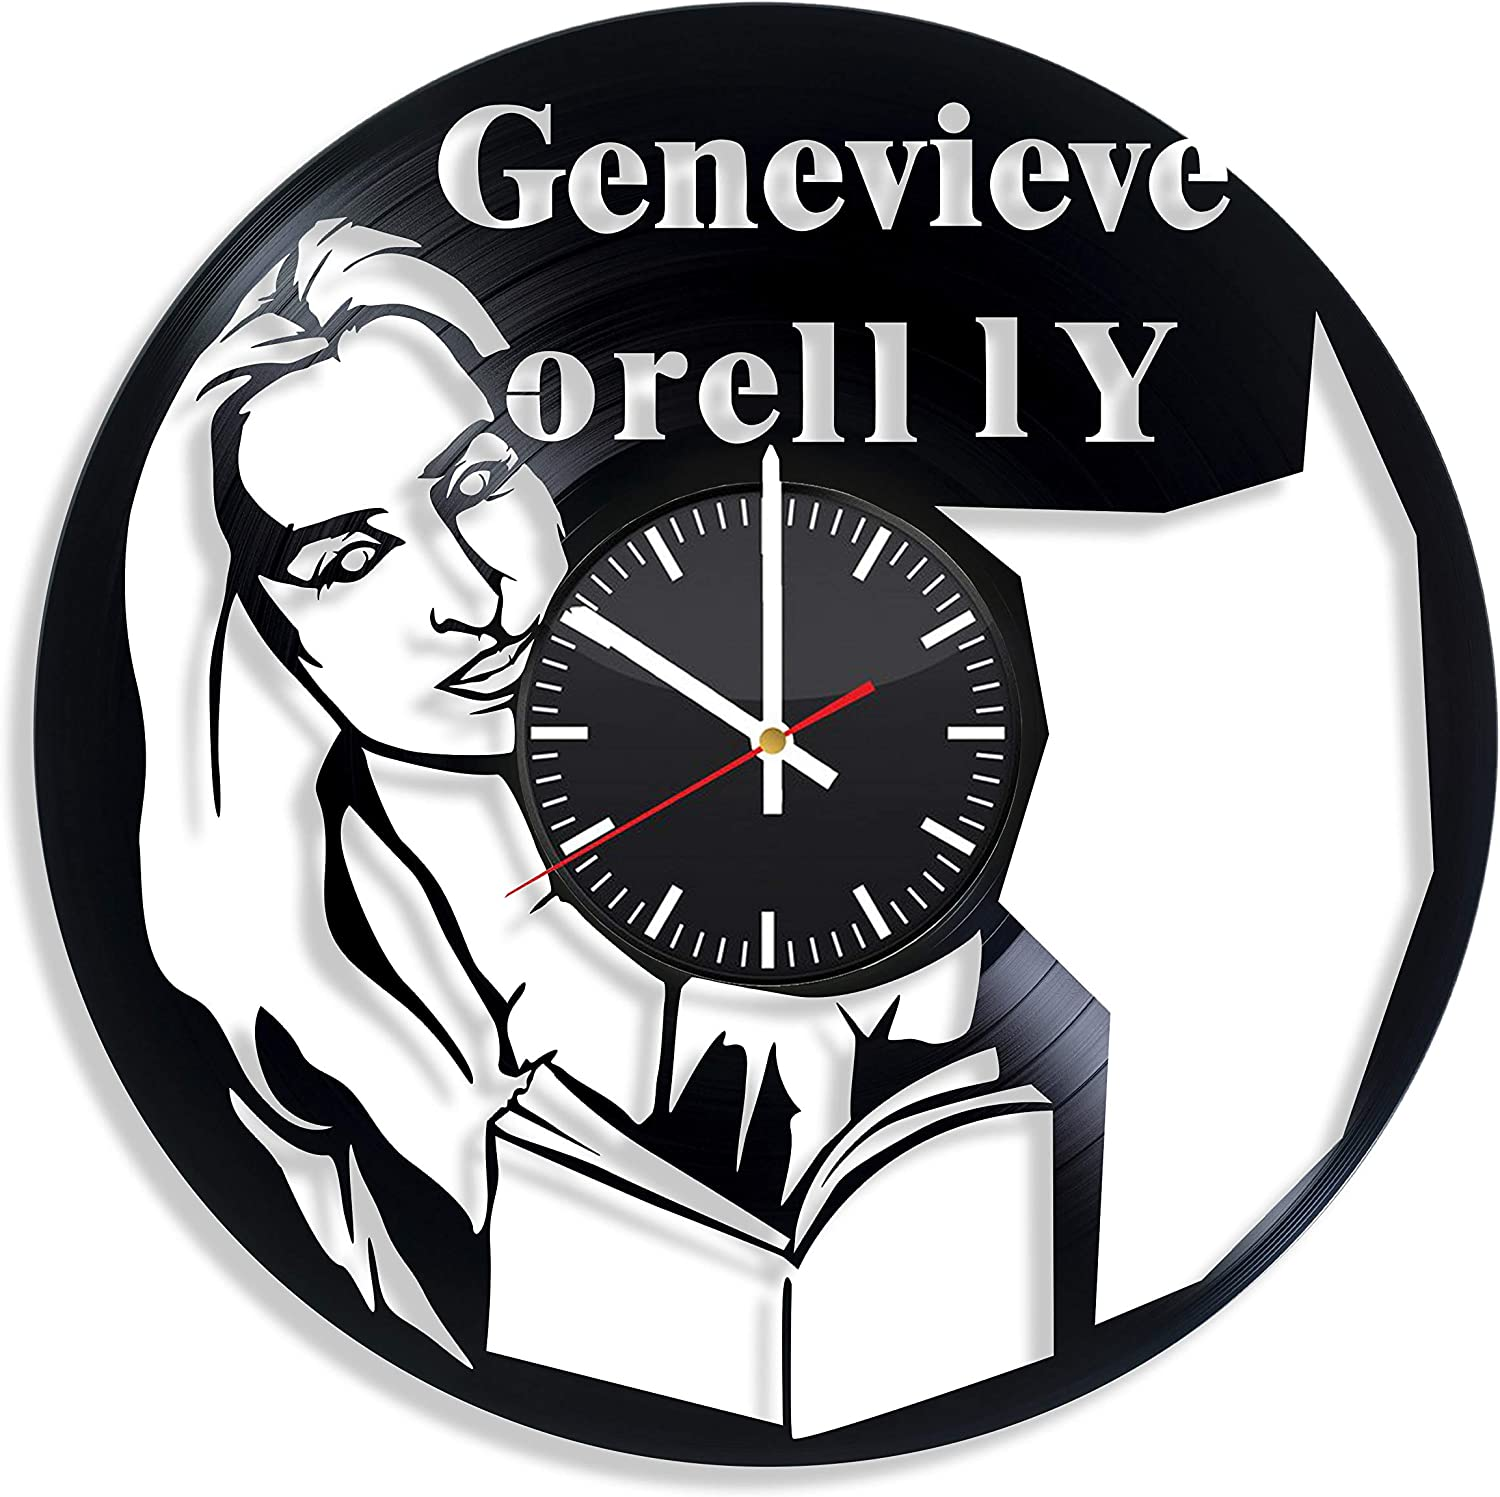 Amazon Com Genevieve O Reilly Actor Handmade Vinyl Wall Clock Get Unique Gifts Presents For Birthday Christmas Ideas For Boys Girls Men Women Adults Him And Her Sport Unique Design Home